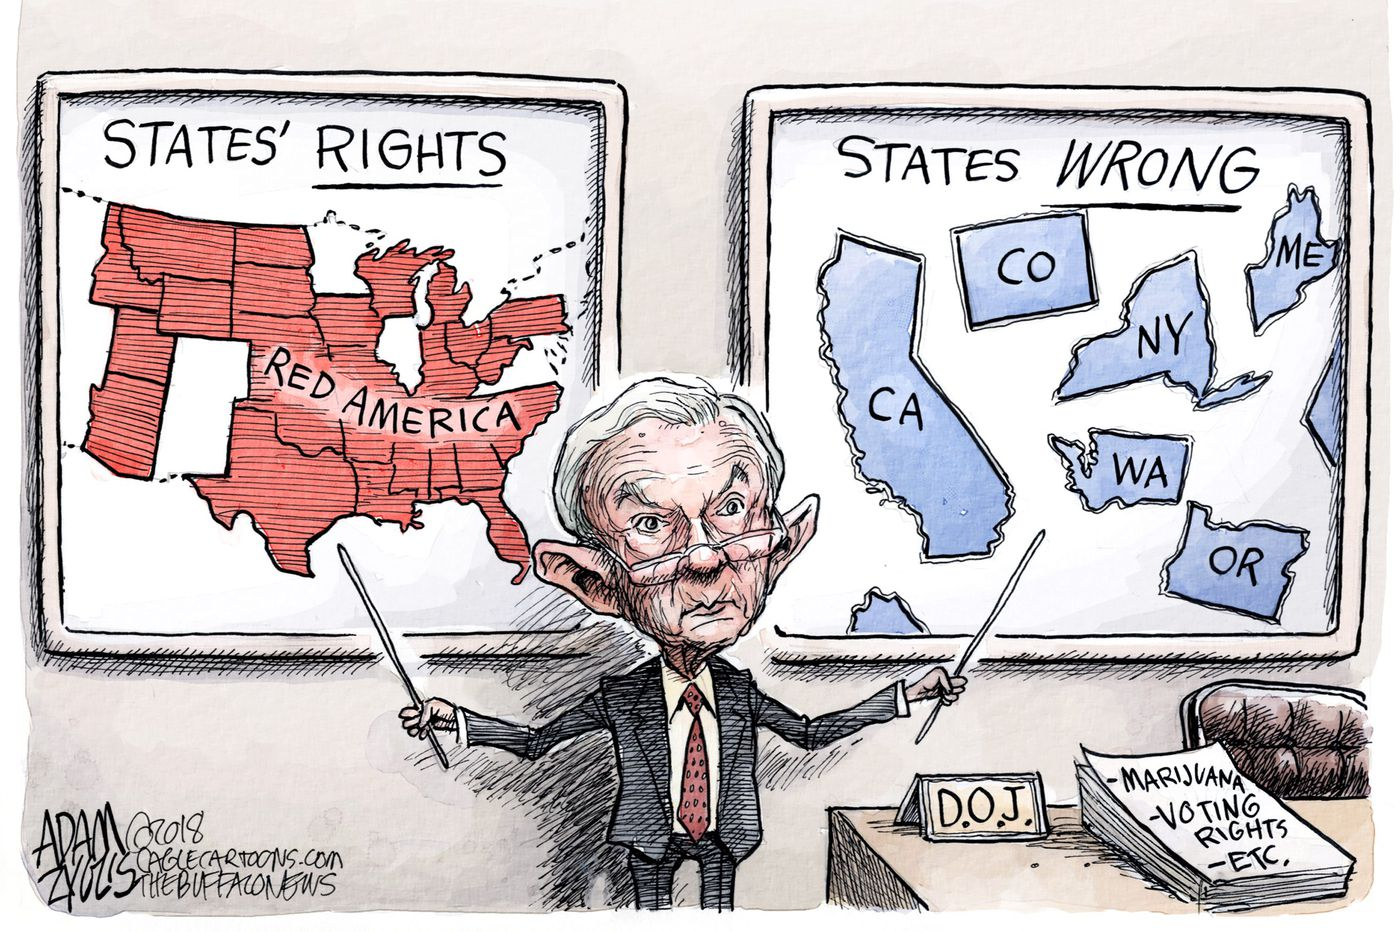 Jeff Sessions' turbulent tenure as attorney general, as seen by cartoonists | Opinion